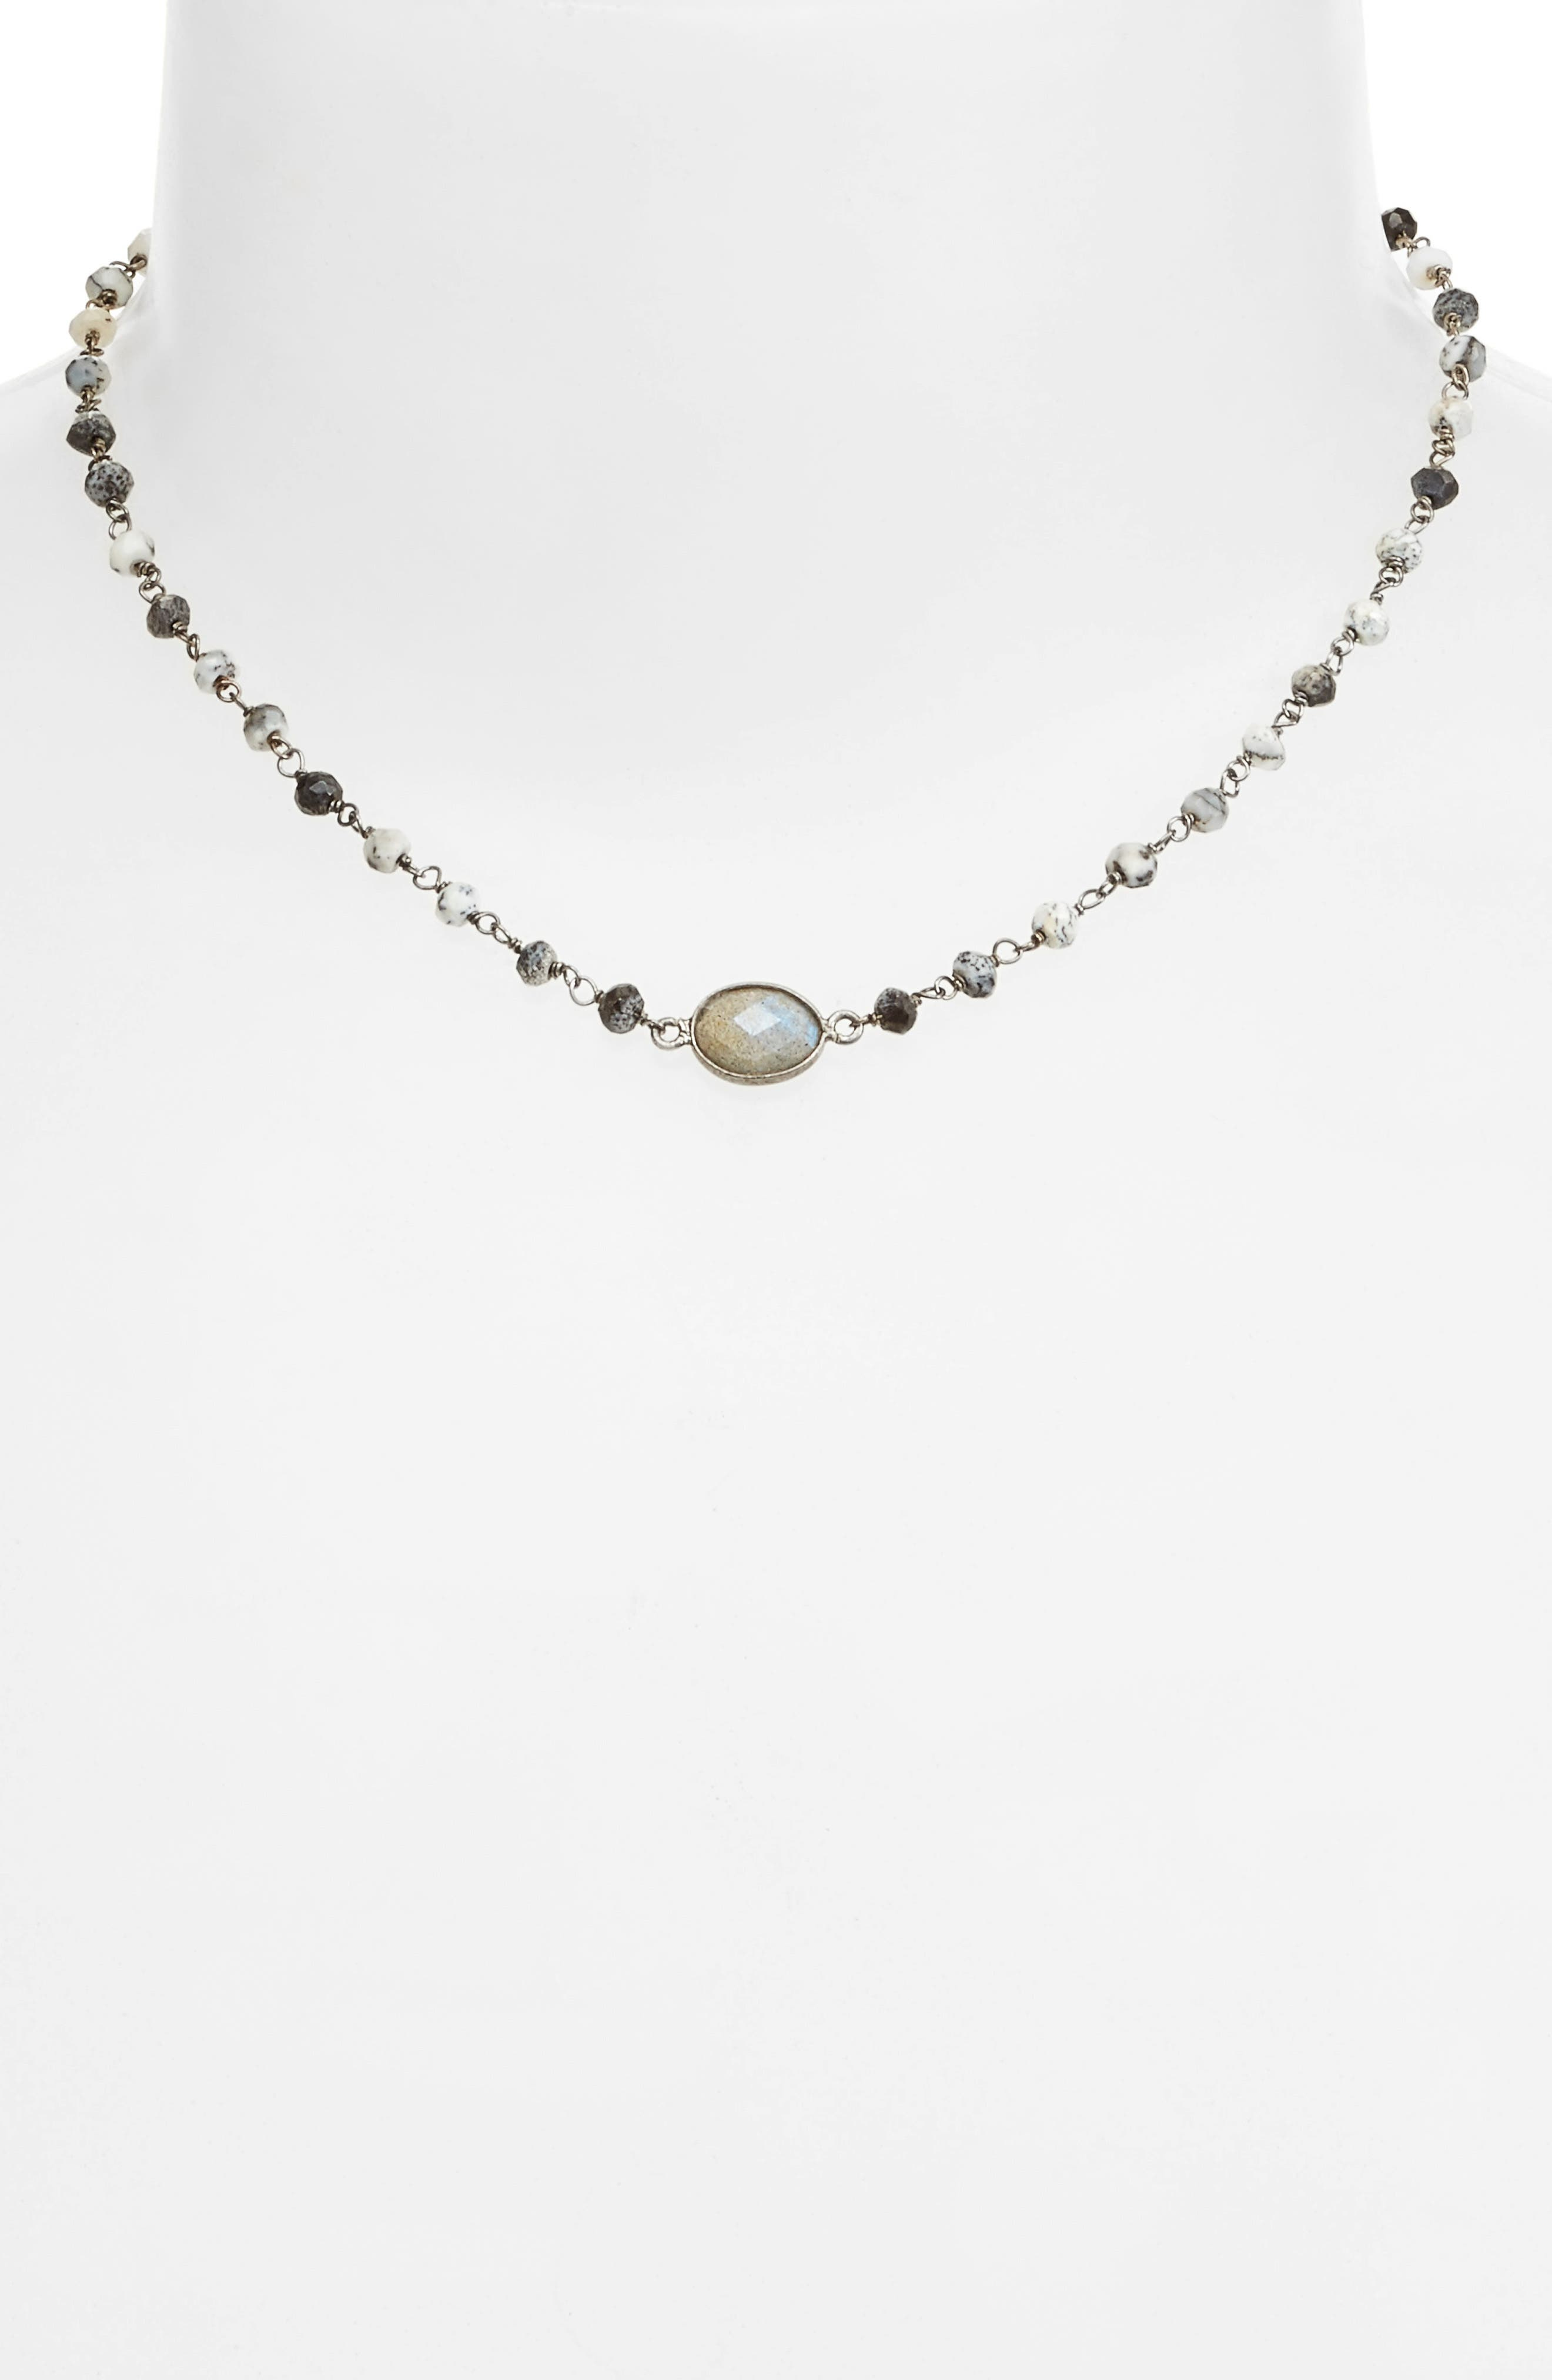 ela rae Libi Semiprecious Stone Collar Necklace